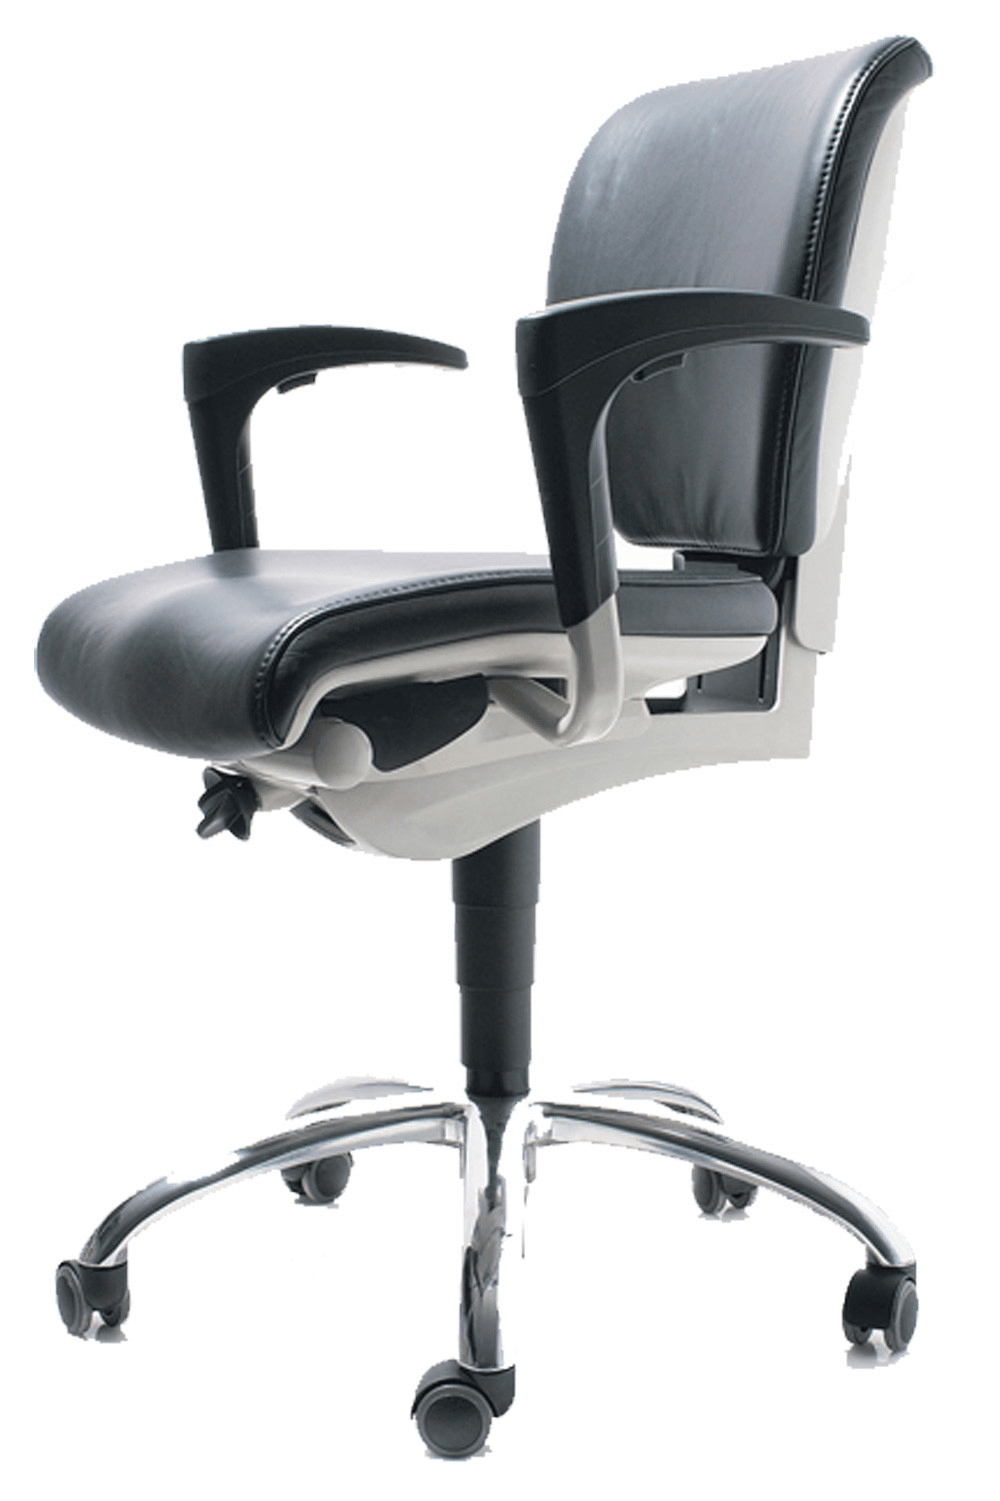 SENsit The comfortable lab equipment and office chair